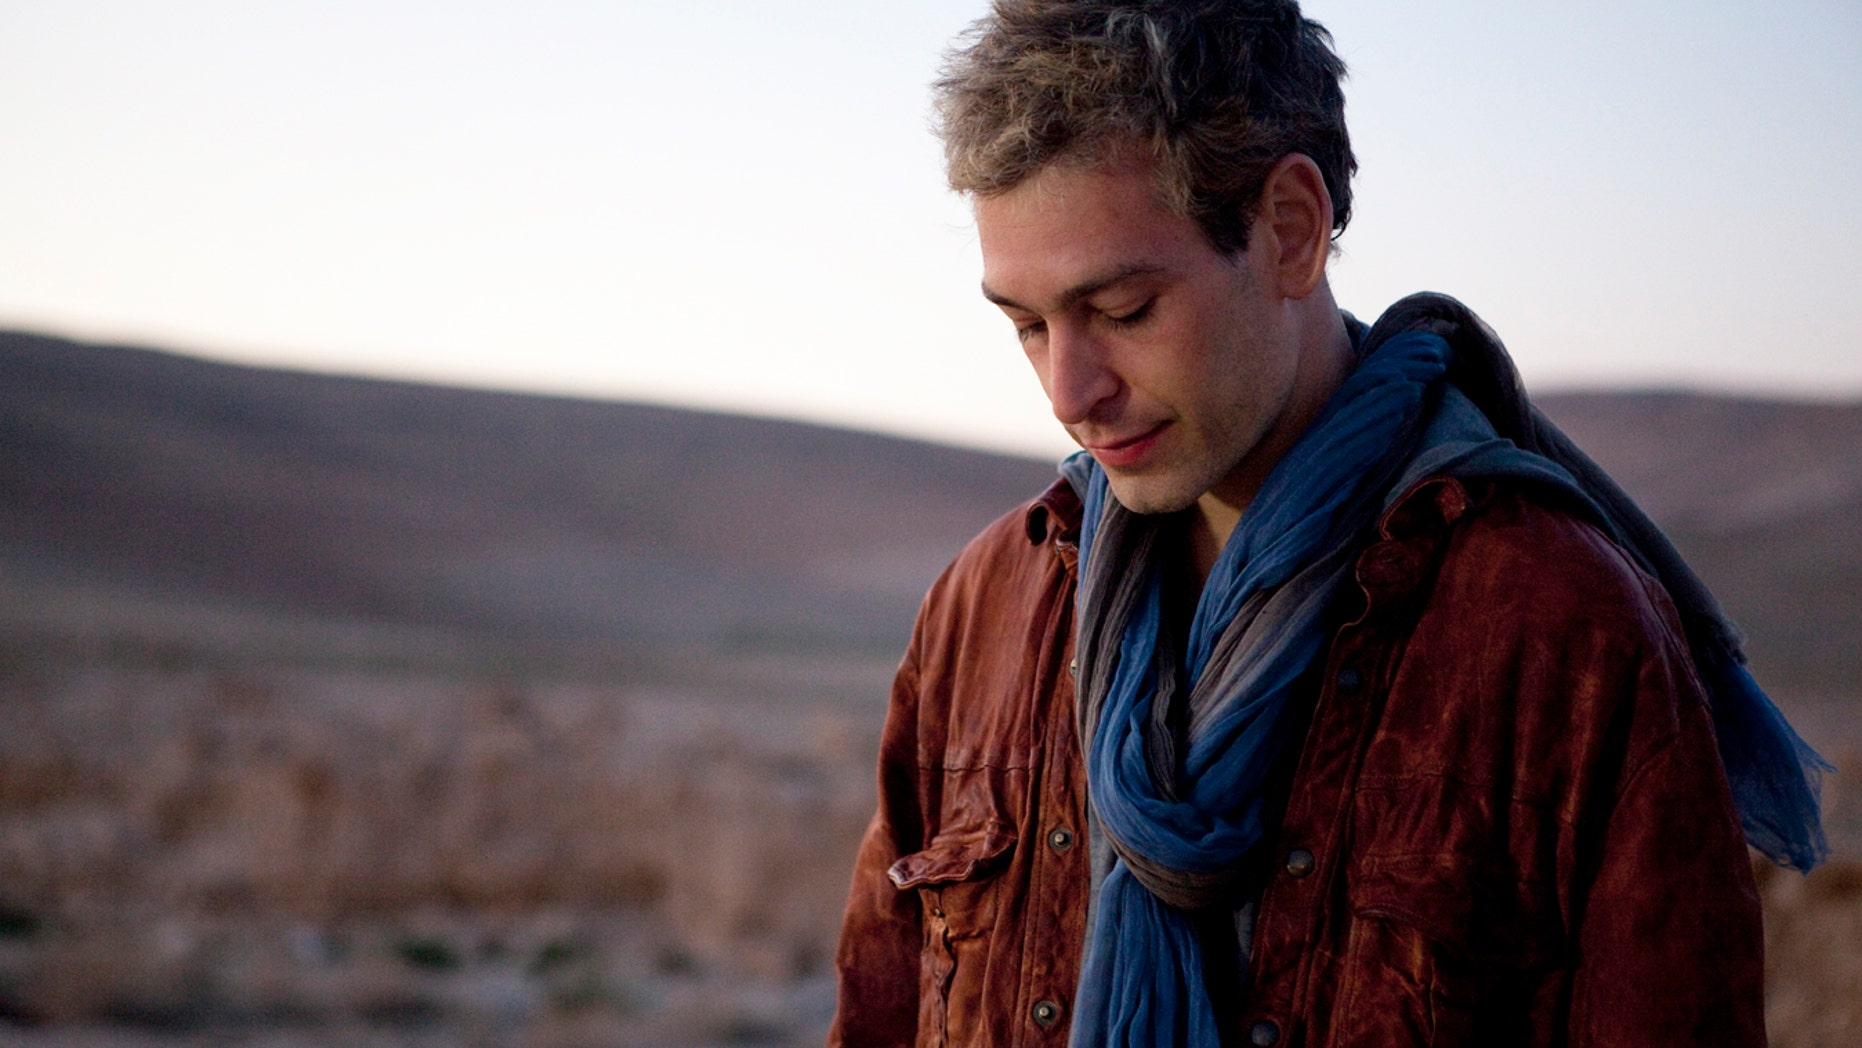 Jewish musician Matisyahu had a concert cancelled after festival organizers received pressure from anti-Israel groups.